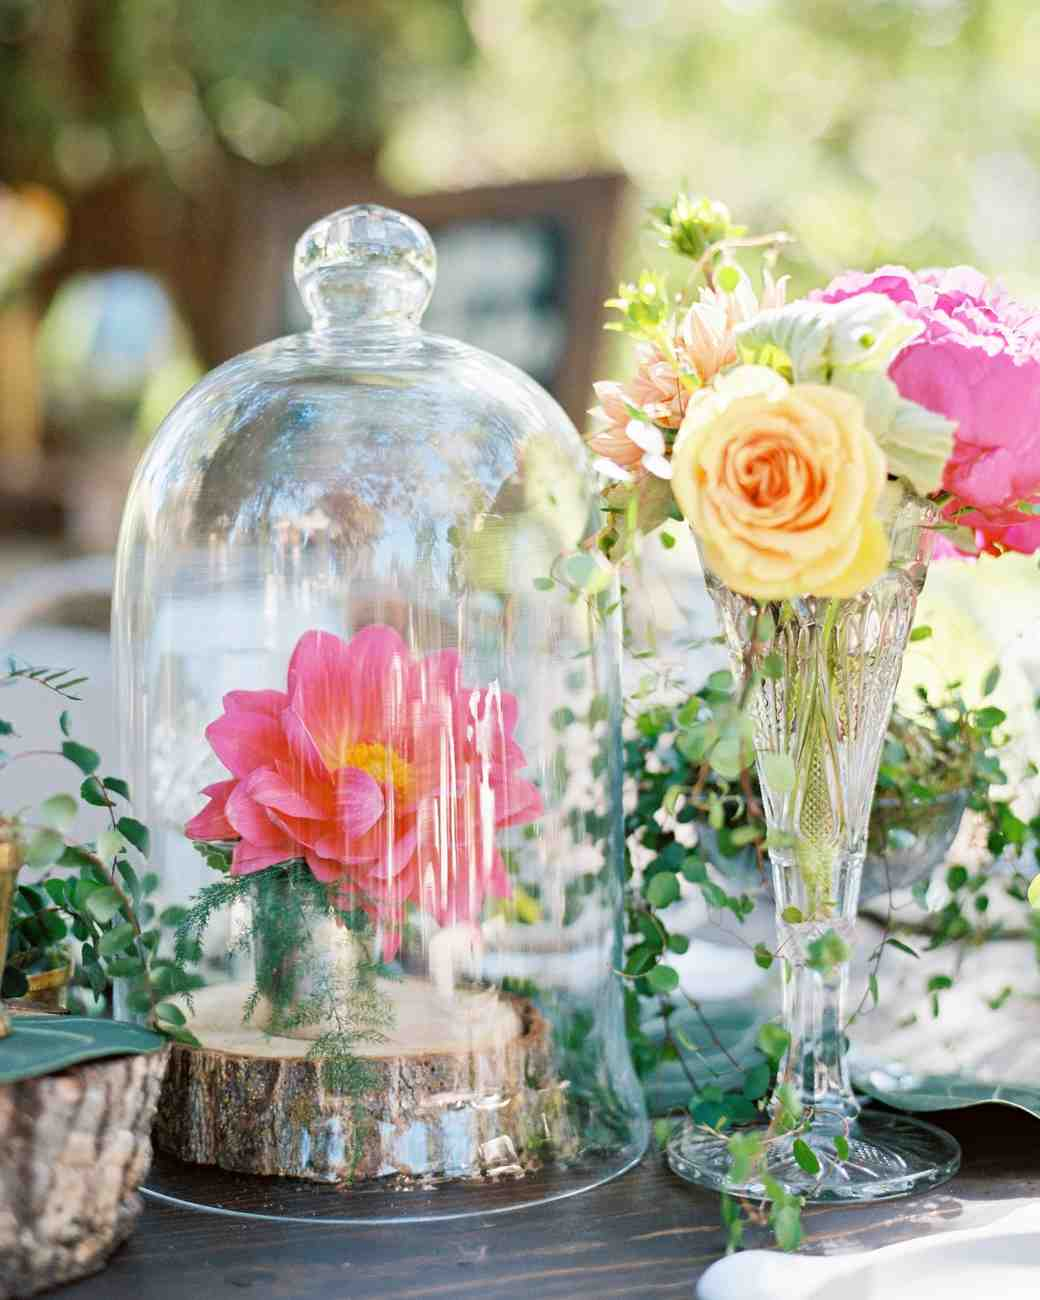 Pink rose wedding centerpiece with glass cloche and log slices